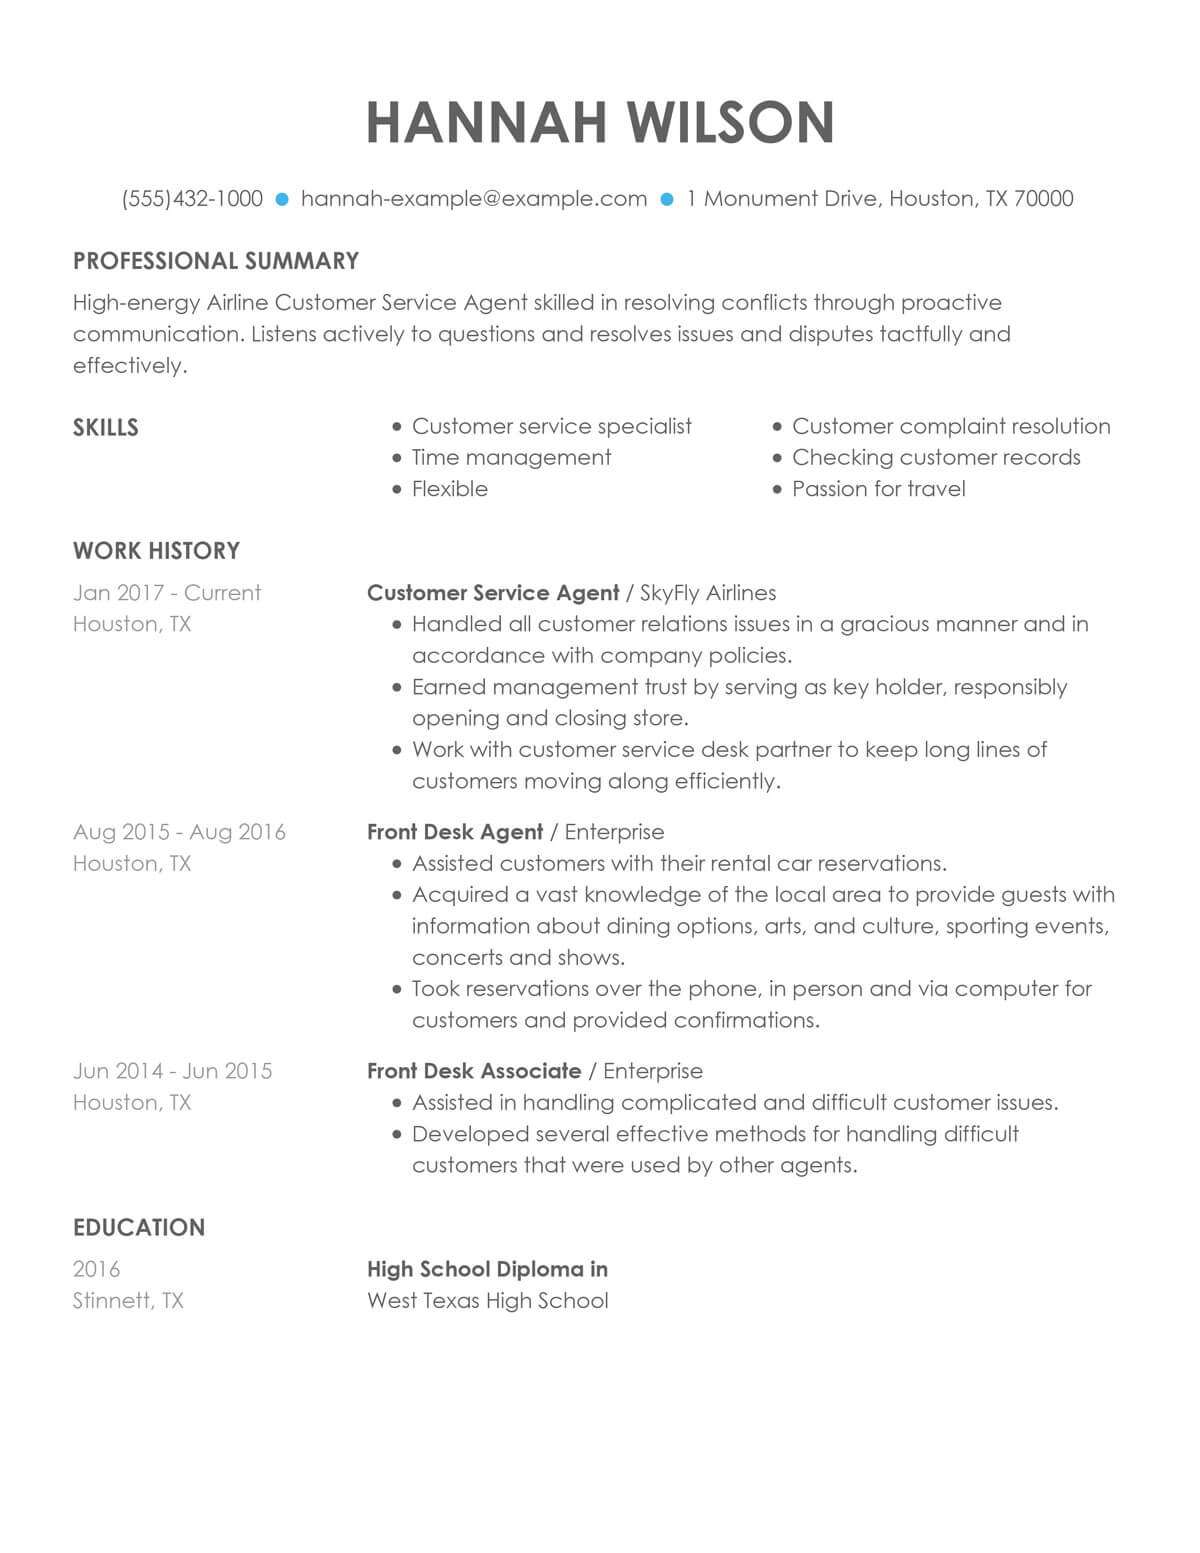 customize our customer representative resume example examples for service jobs airline Resume Resume Examples For Customer Service Jobs